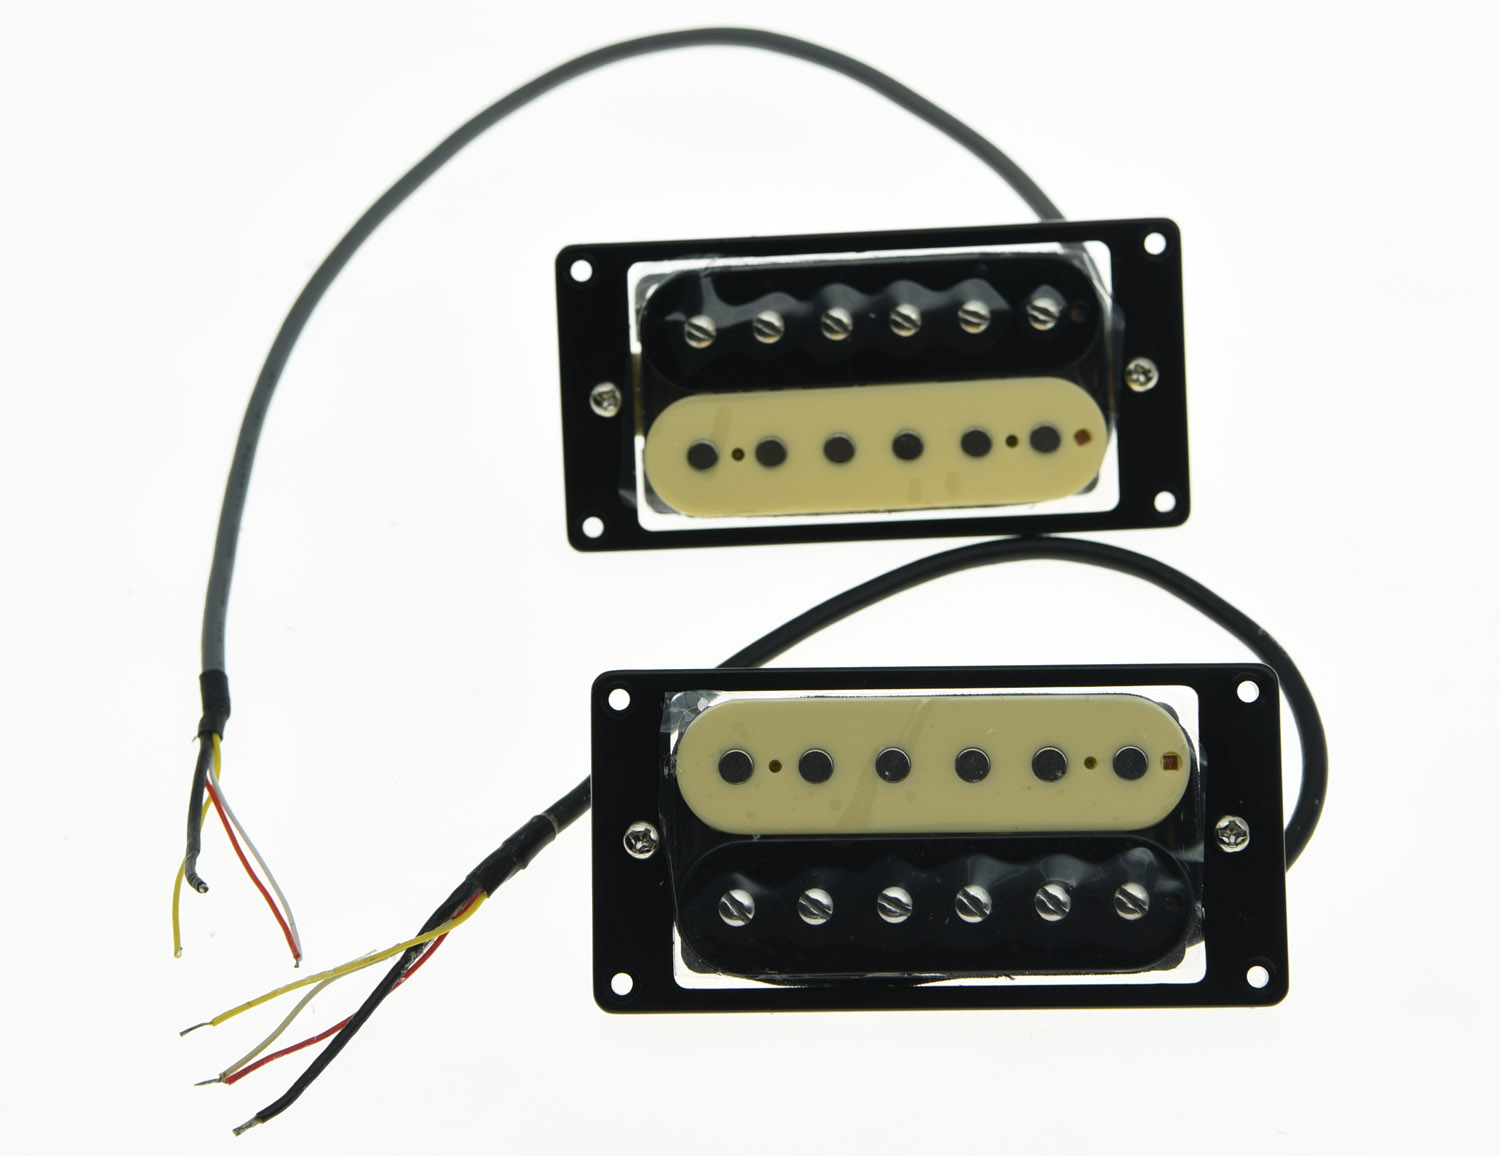 KAISH Set of 2 Zebra 50's Vintage Sound Pickups Alnico V Humbucker Neck&Bridge Pickup new humbucker pickup set gold four conductor wires alnico v pickups